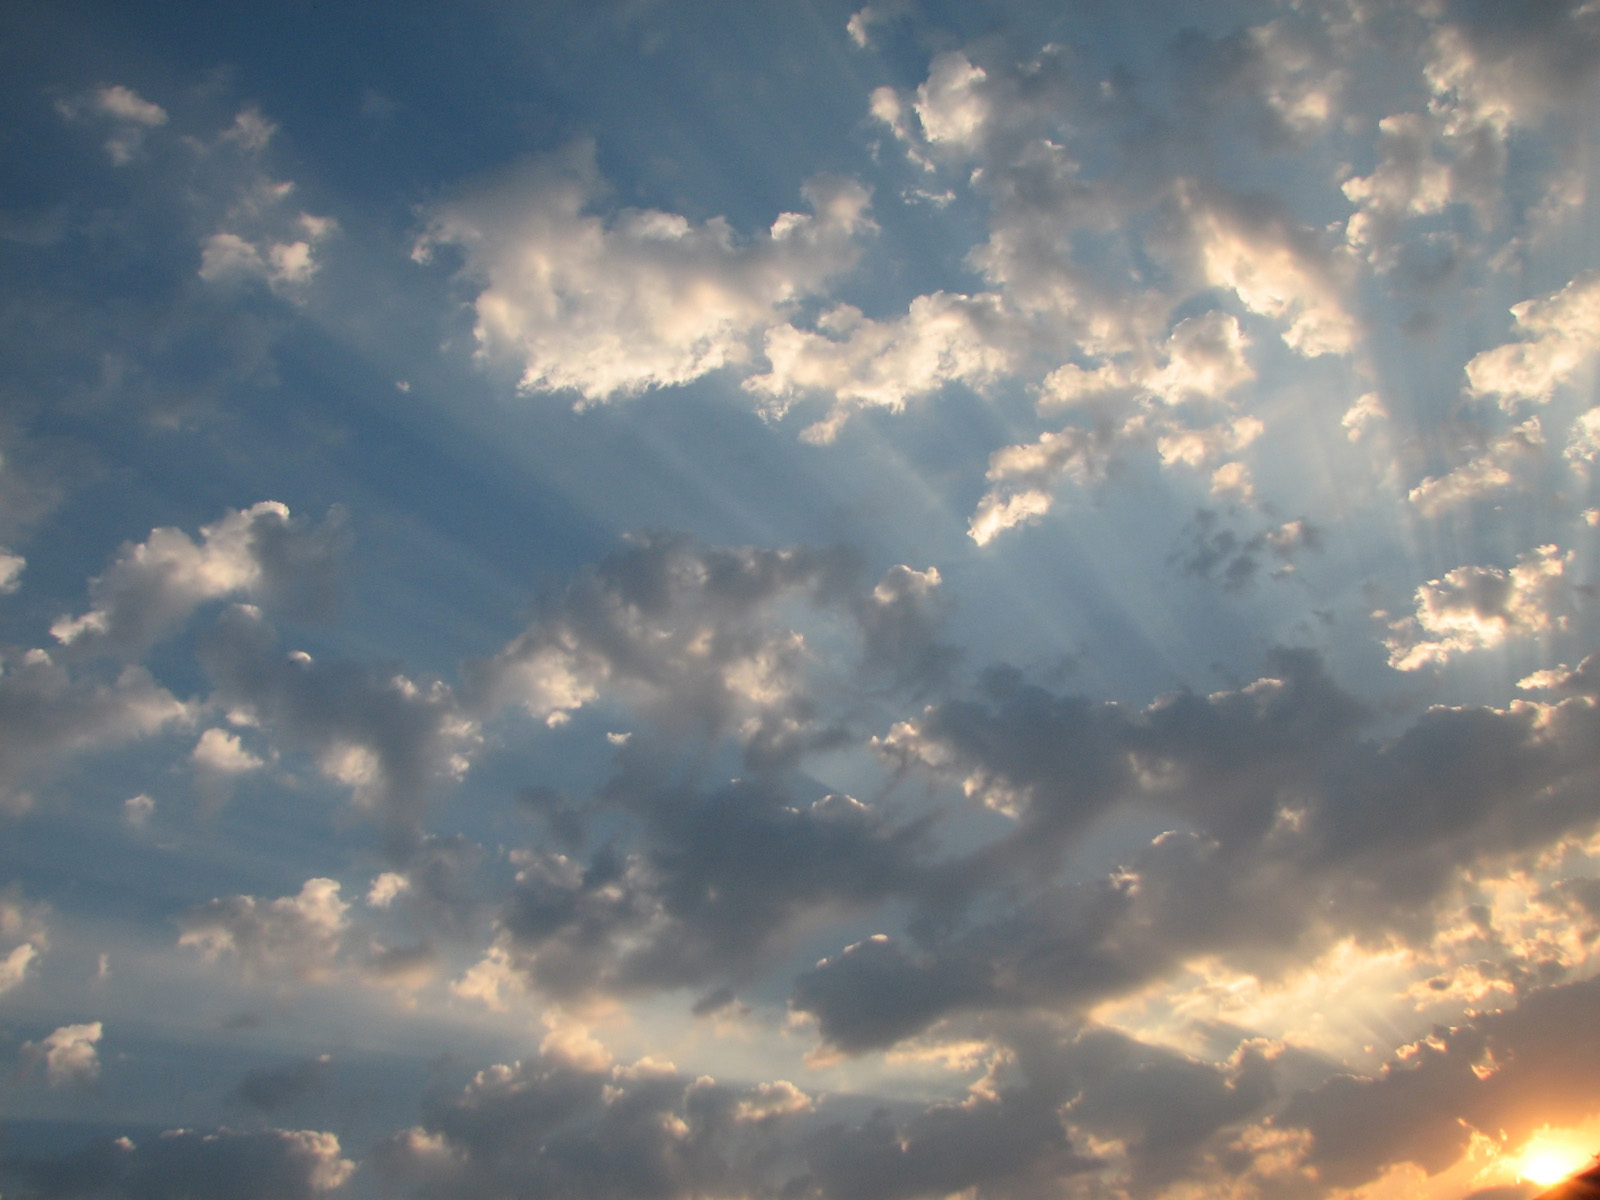 Clouds-Sunrise-32 by